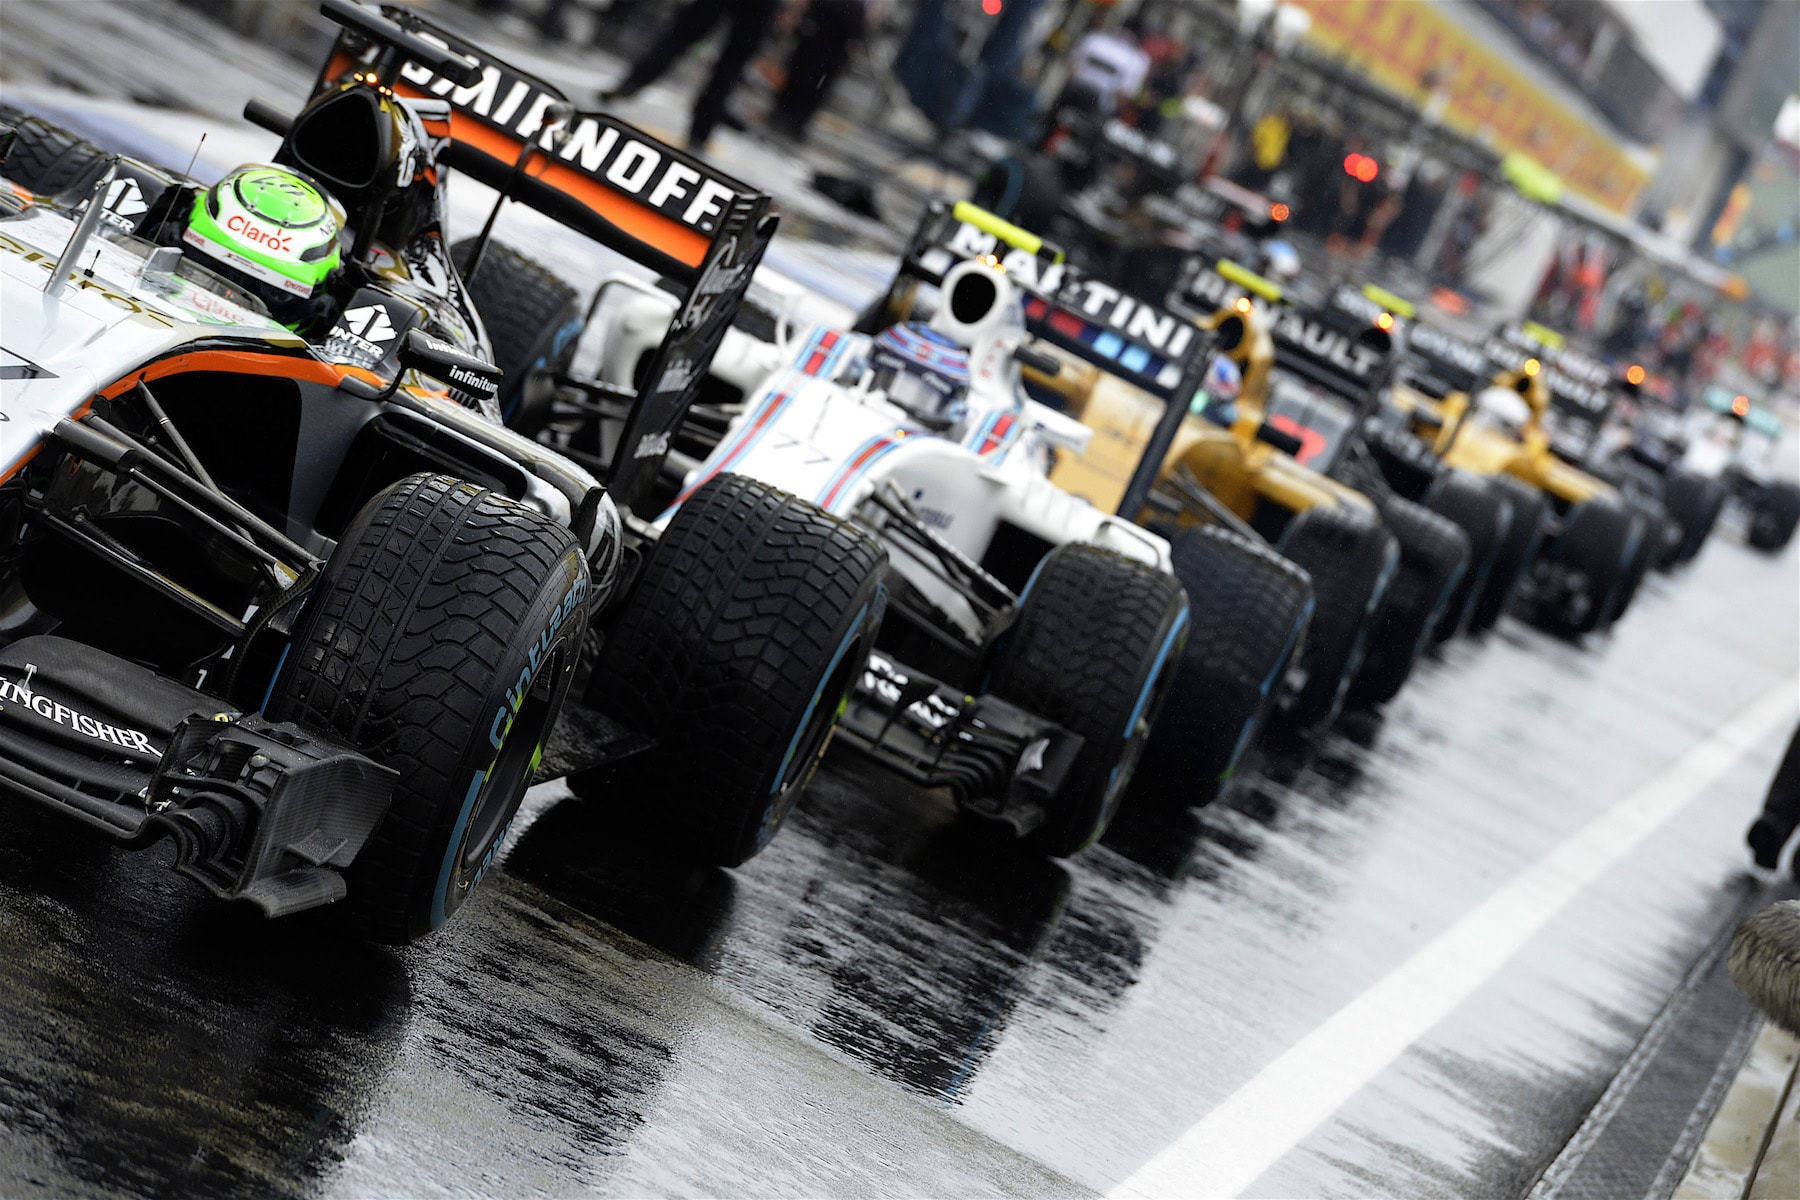 Salracing | F1 cars leaving the pits for Q1